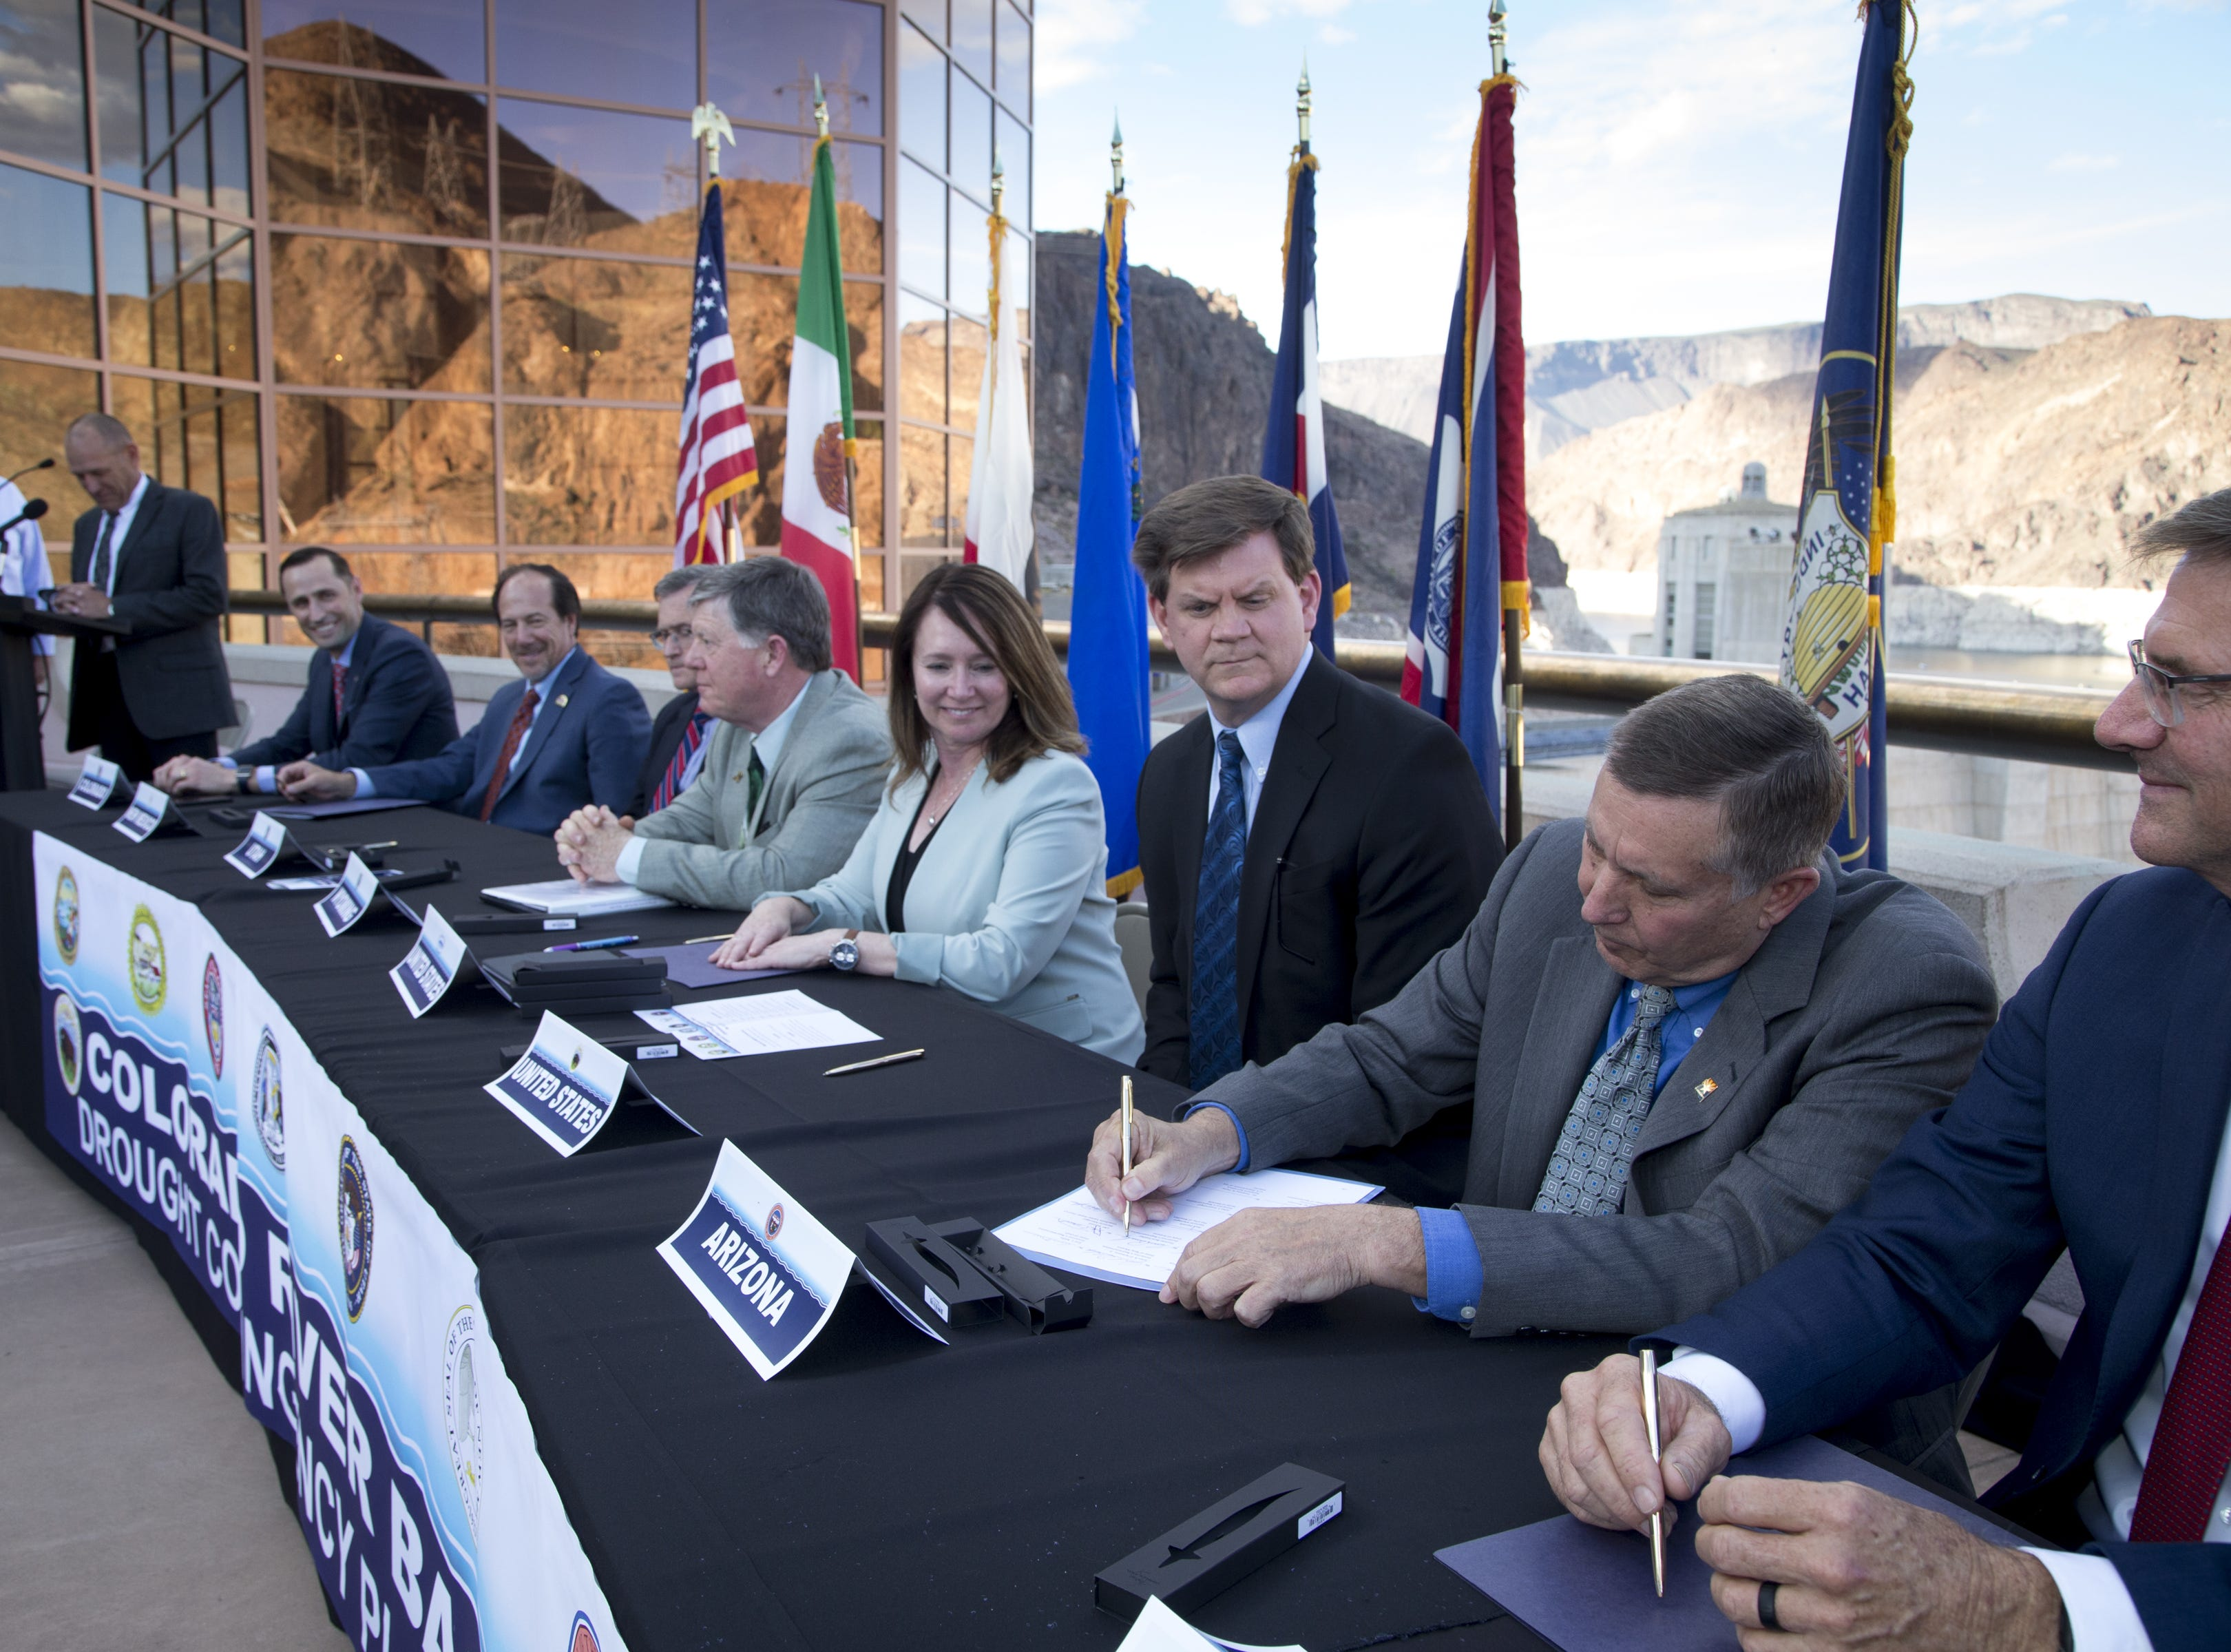 States sign short-term Colorado River drought plan, but global warming looms over long-term solutions